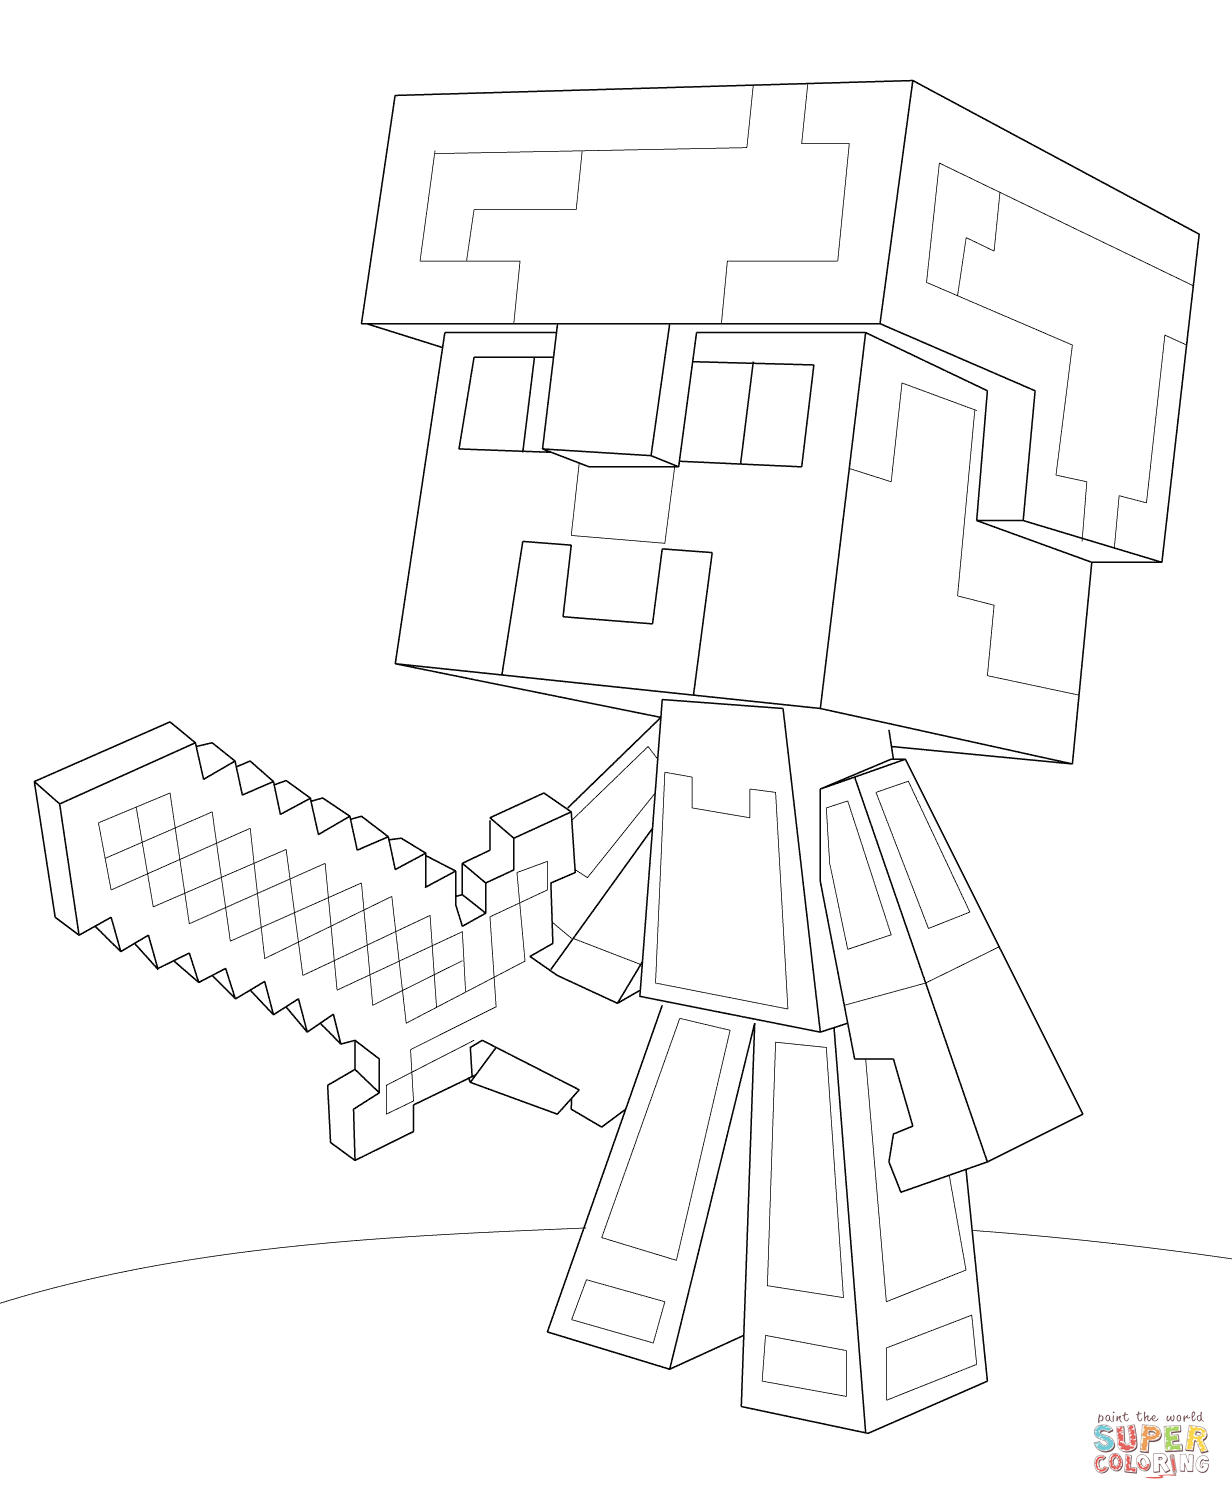 minecraft weapons coloring pages best of printable minecraft sword coloring pages cool pages minecraft weapons coloring